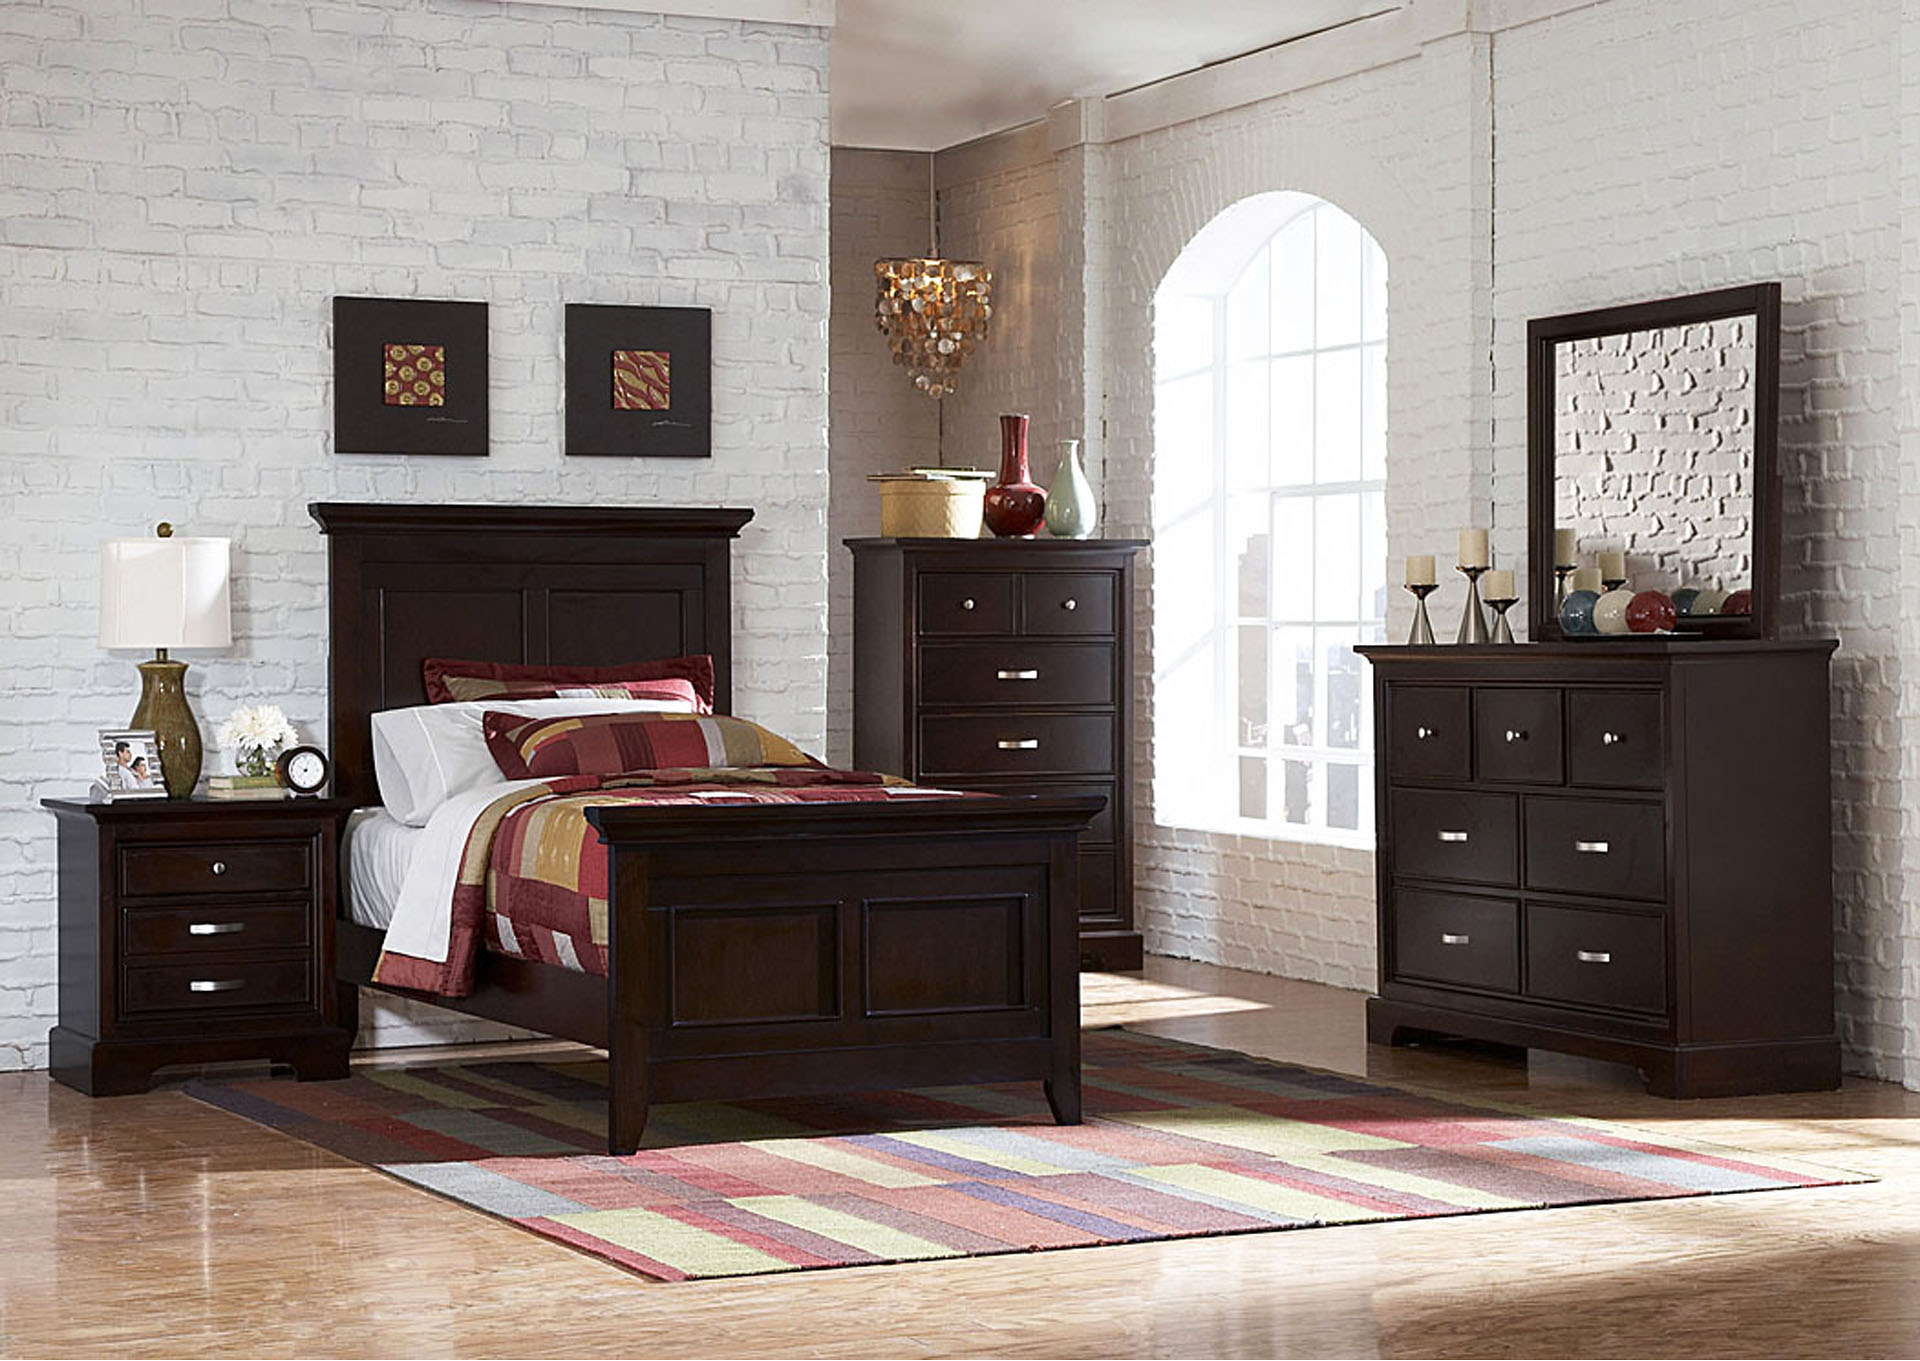 Glamour Espresso Full Panel Bed,Homelegance